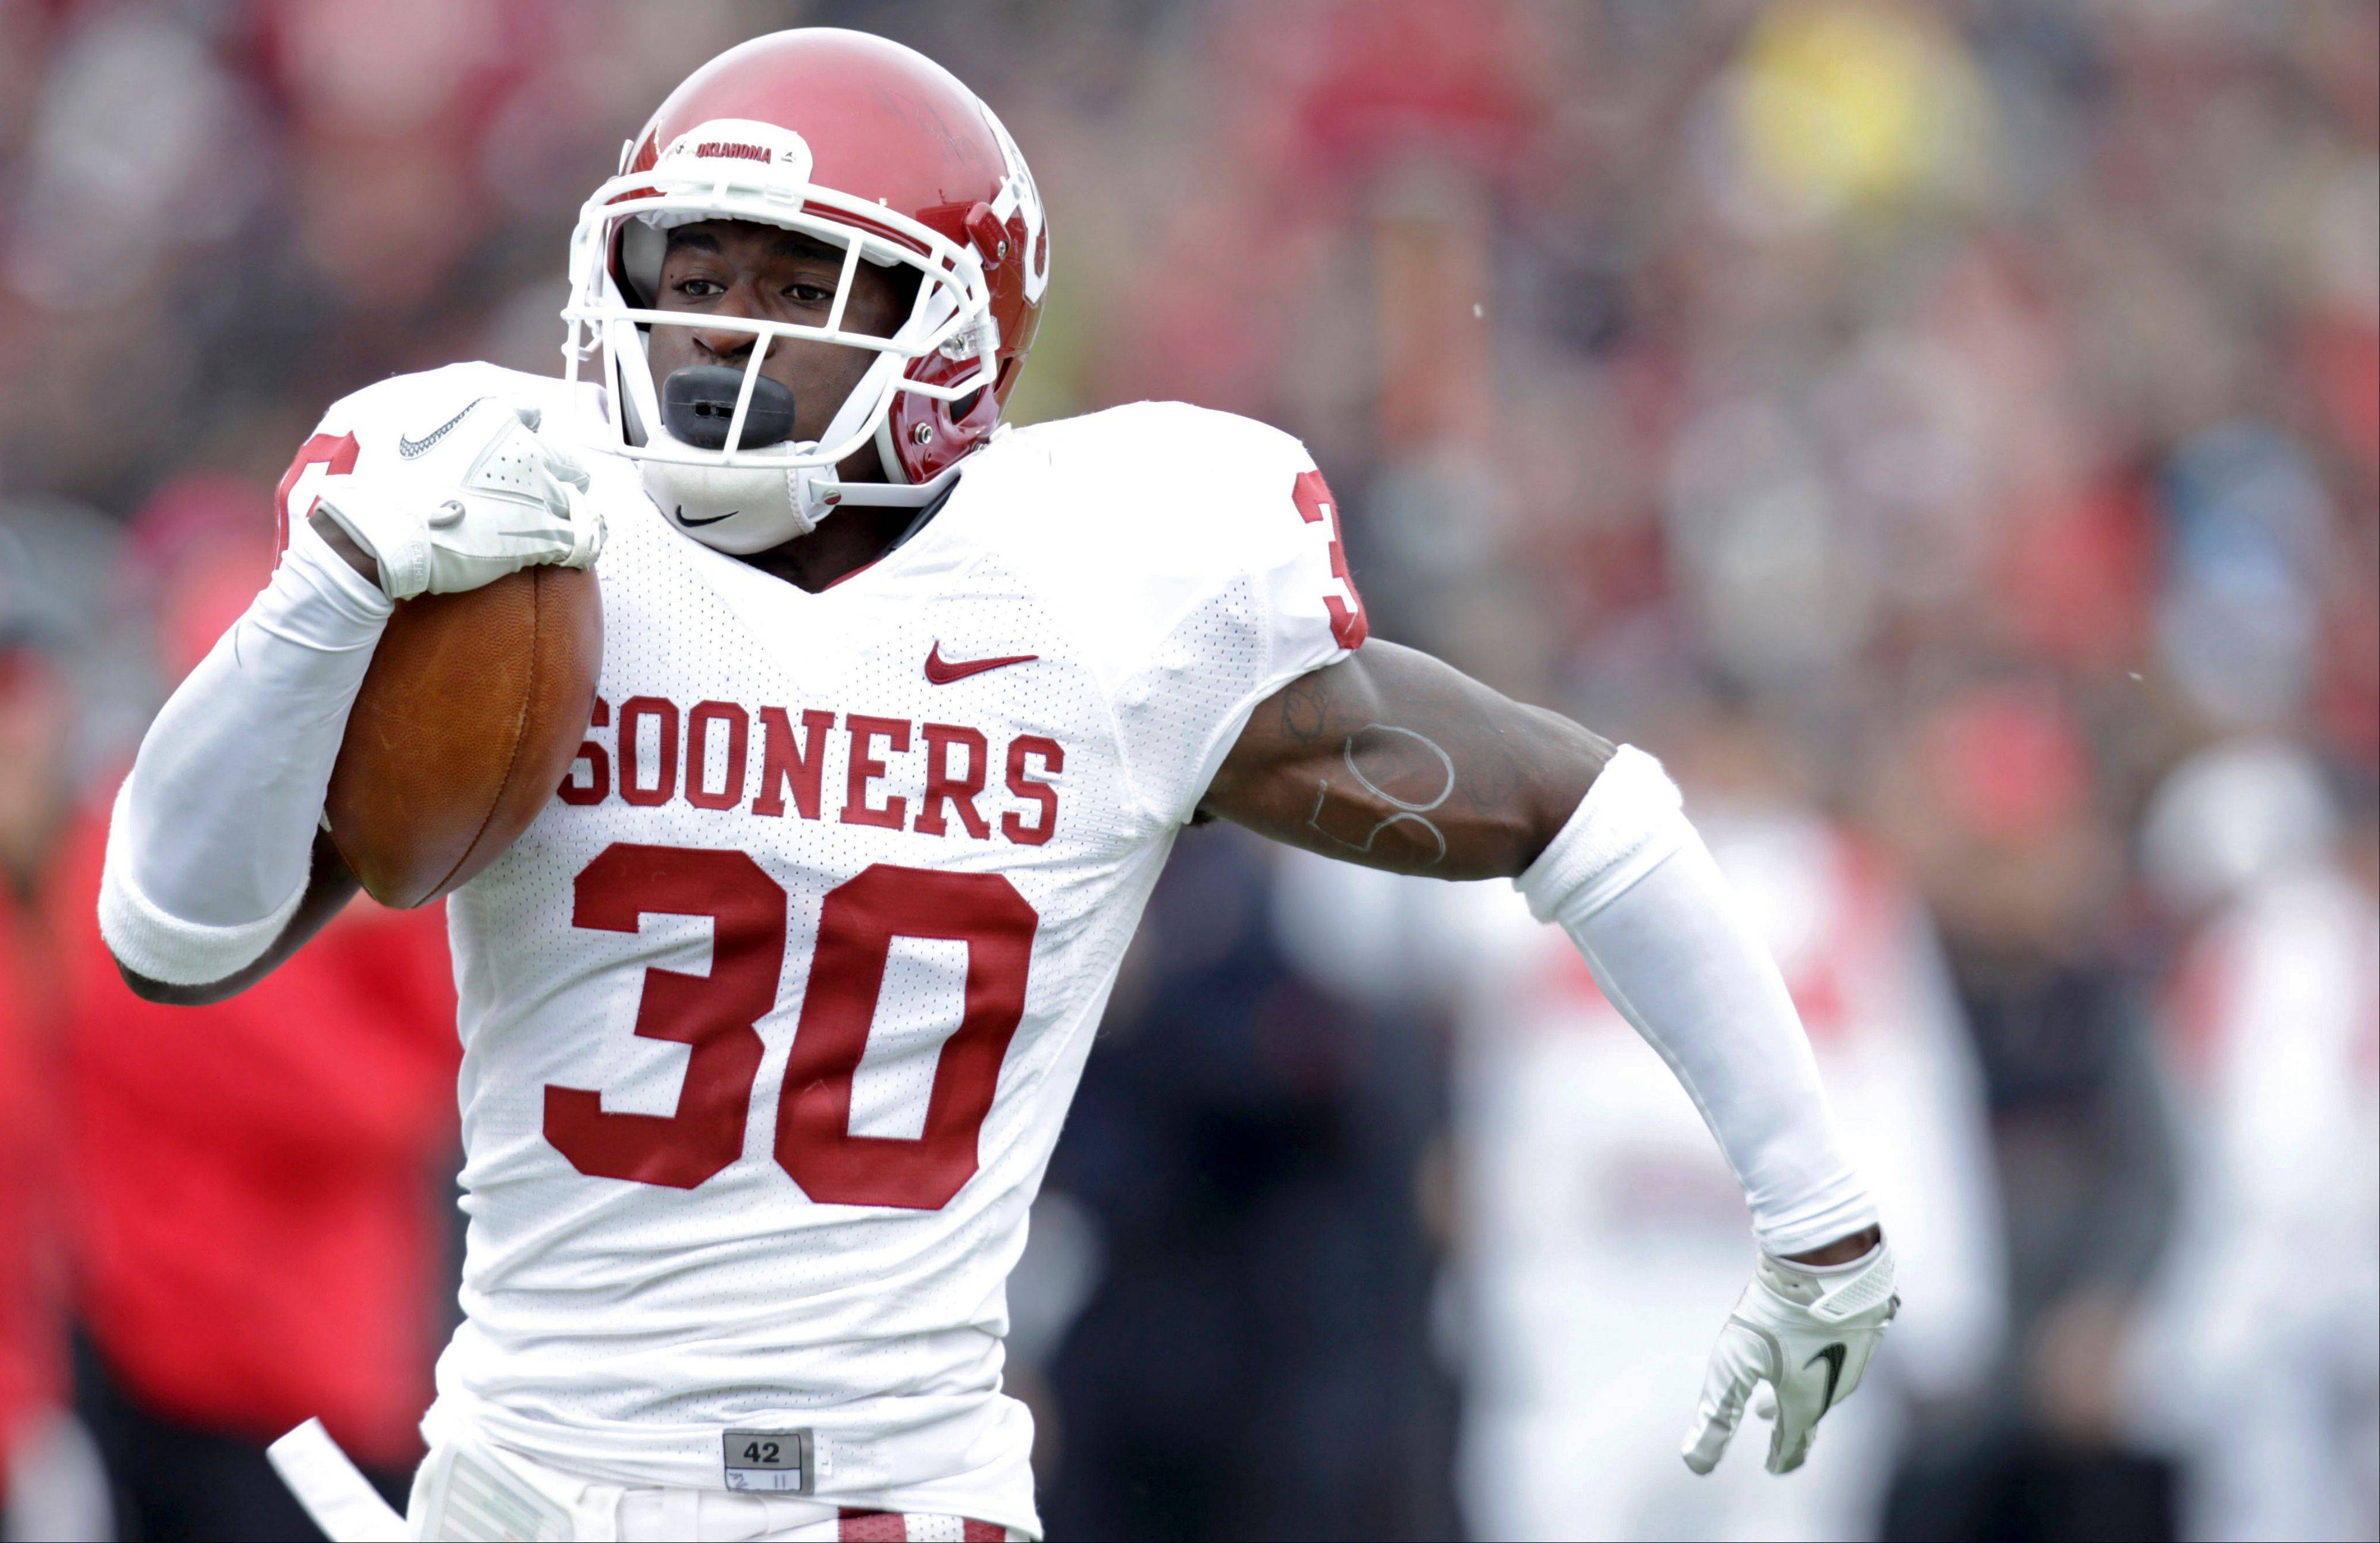 Oklahoma�s Javon Harris returns an interception for a touchdown against Texas Tech on Saturday in Lubbock, Texas.